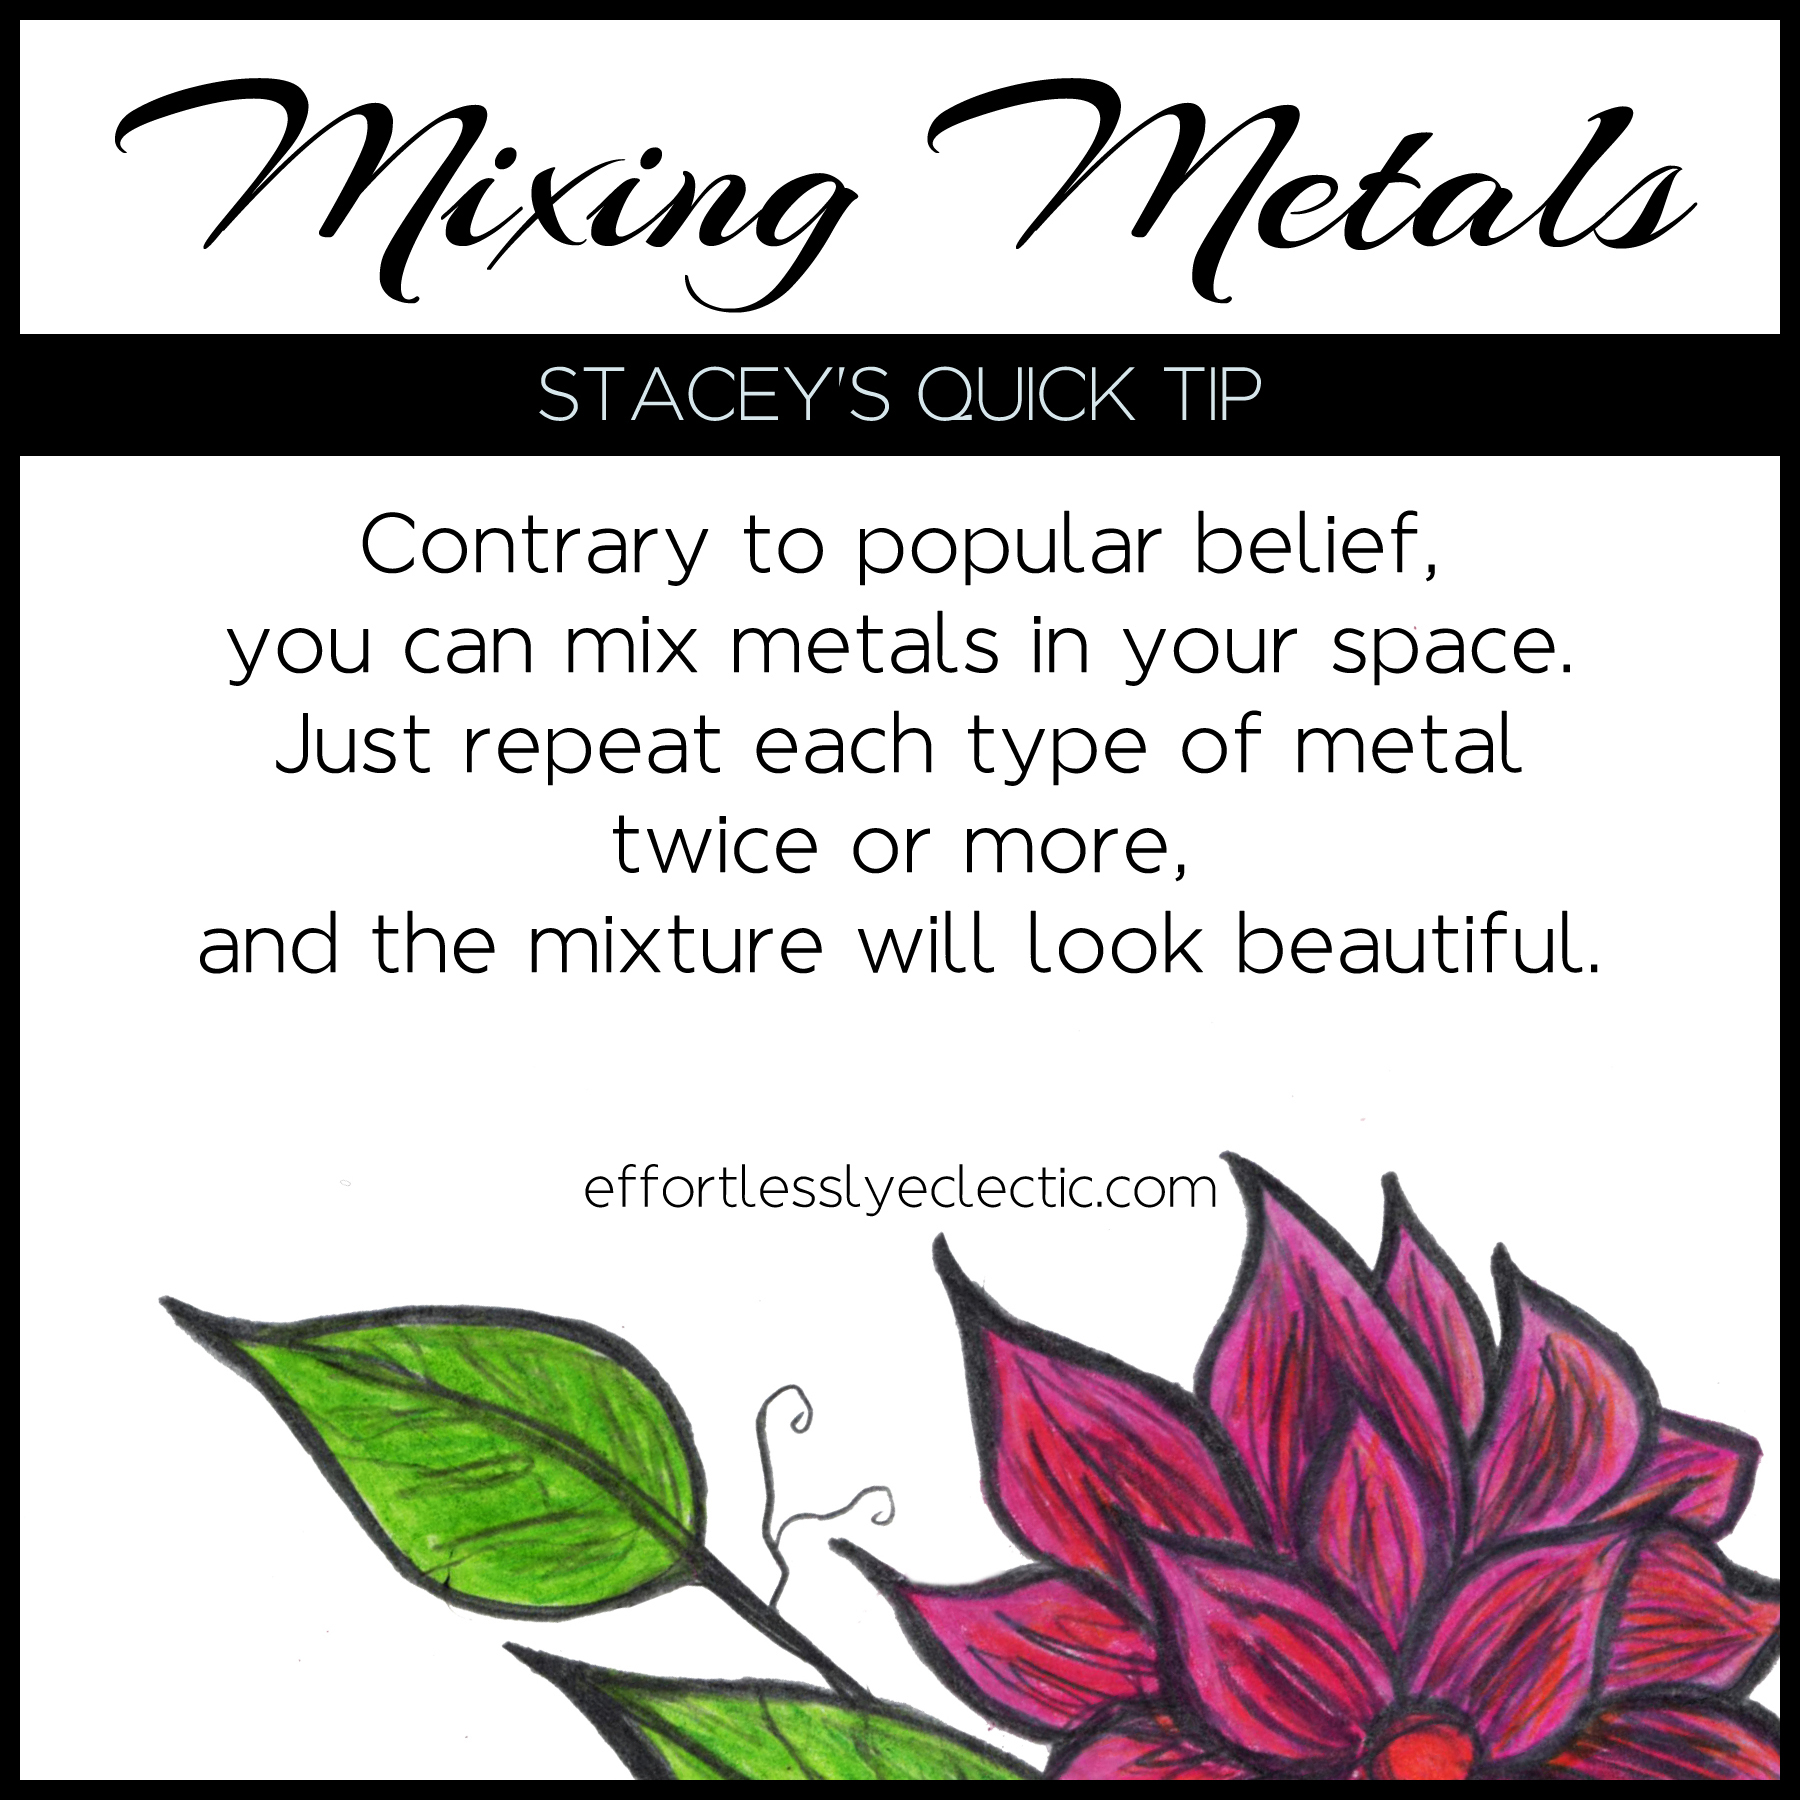 Mixing Metals - A home decor tip about mixing metal colors in your home